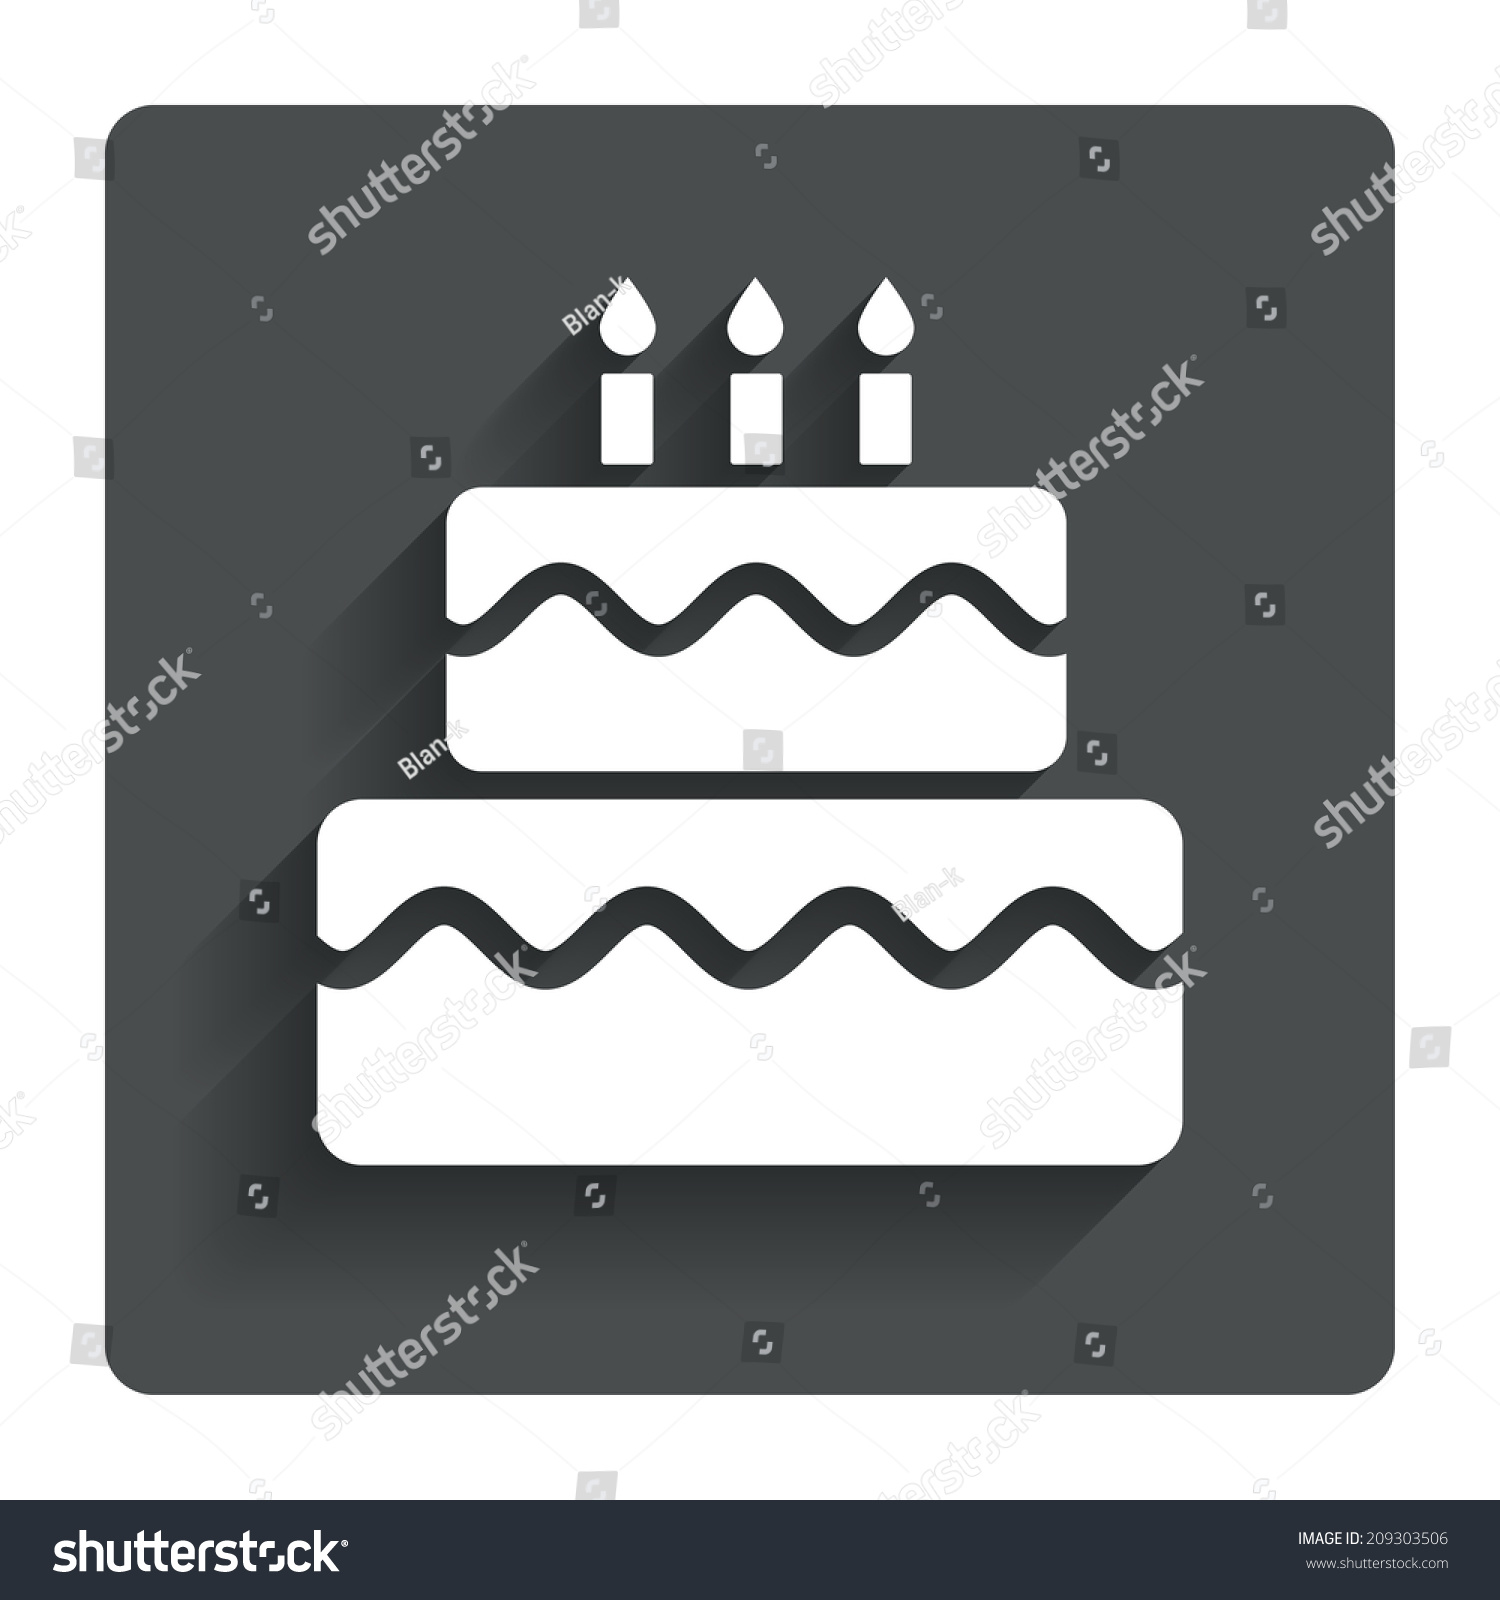 Birthday Cake Sign Icon Cake Burning Stock Illustration 209303506